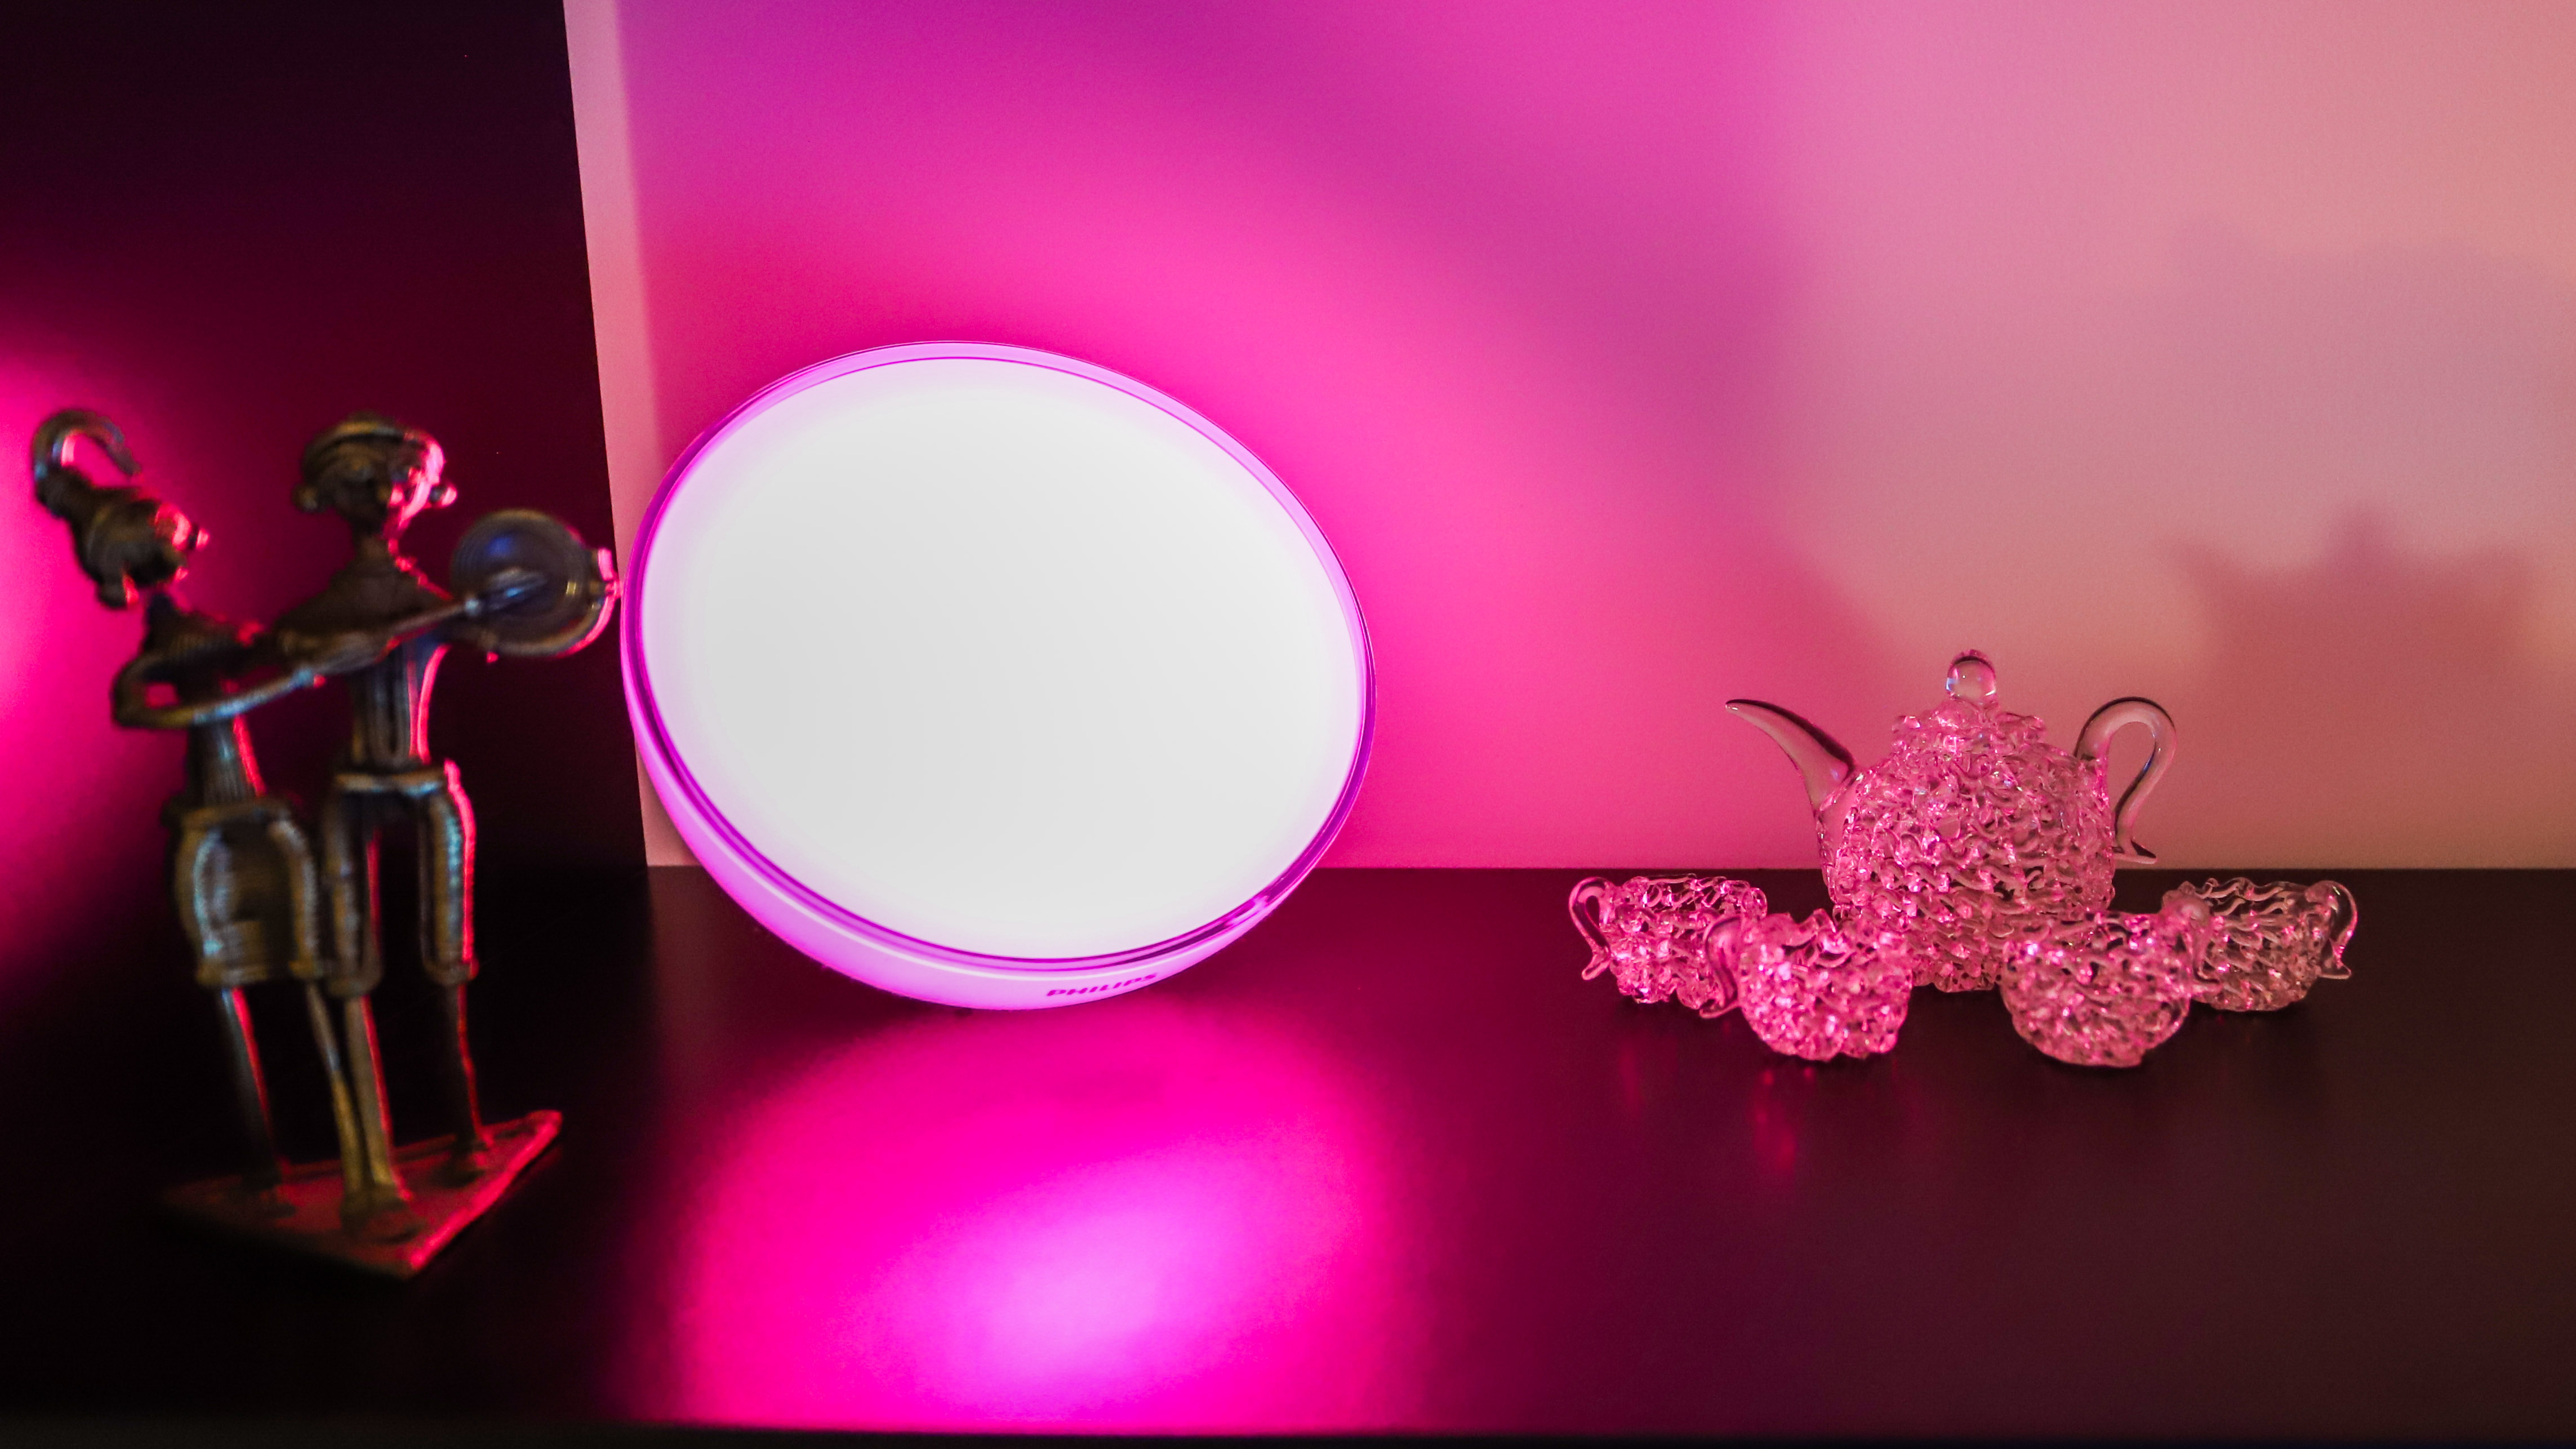 Philips Hue Go 2 with pink light